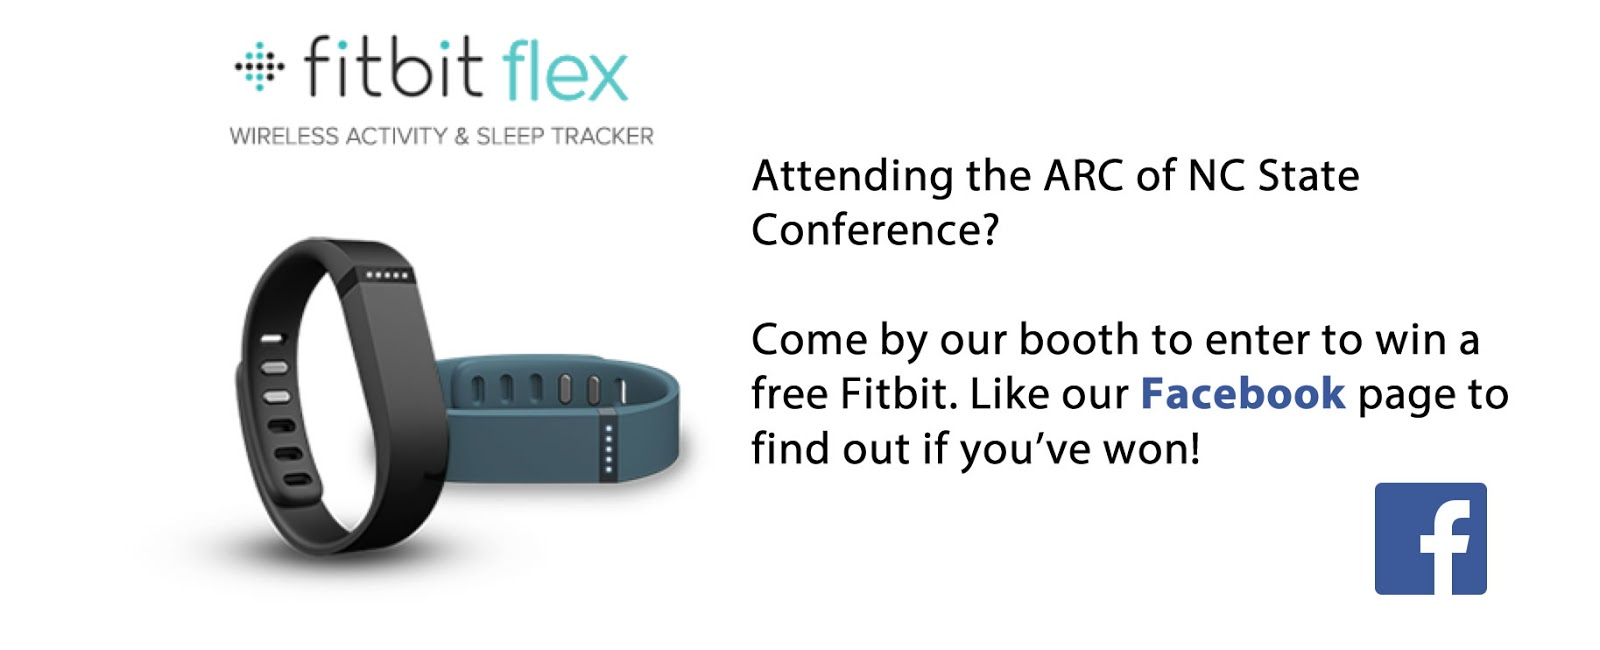 "A graphic showing the Fitbit flex and the Facebook icon; the graphic says, ""Attending the ARC of NC State Conference? Come by our booth to enter to win a free Fitbit. Like our Facebook page to find out if you've won!"""